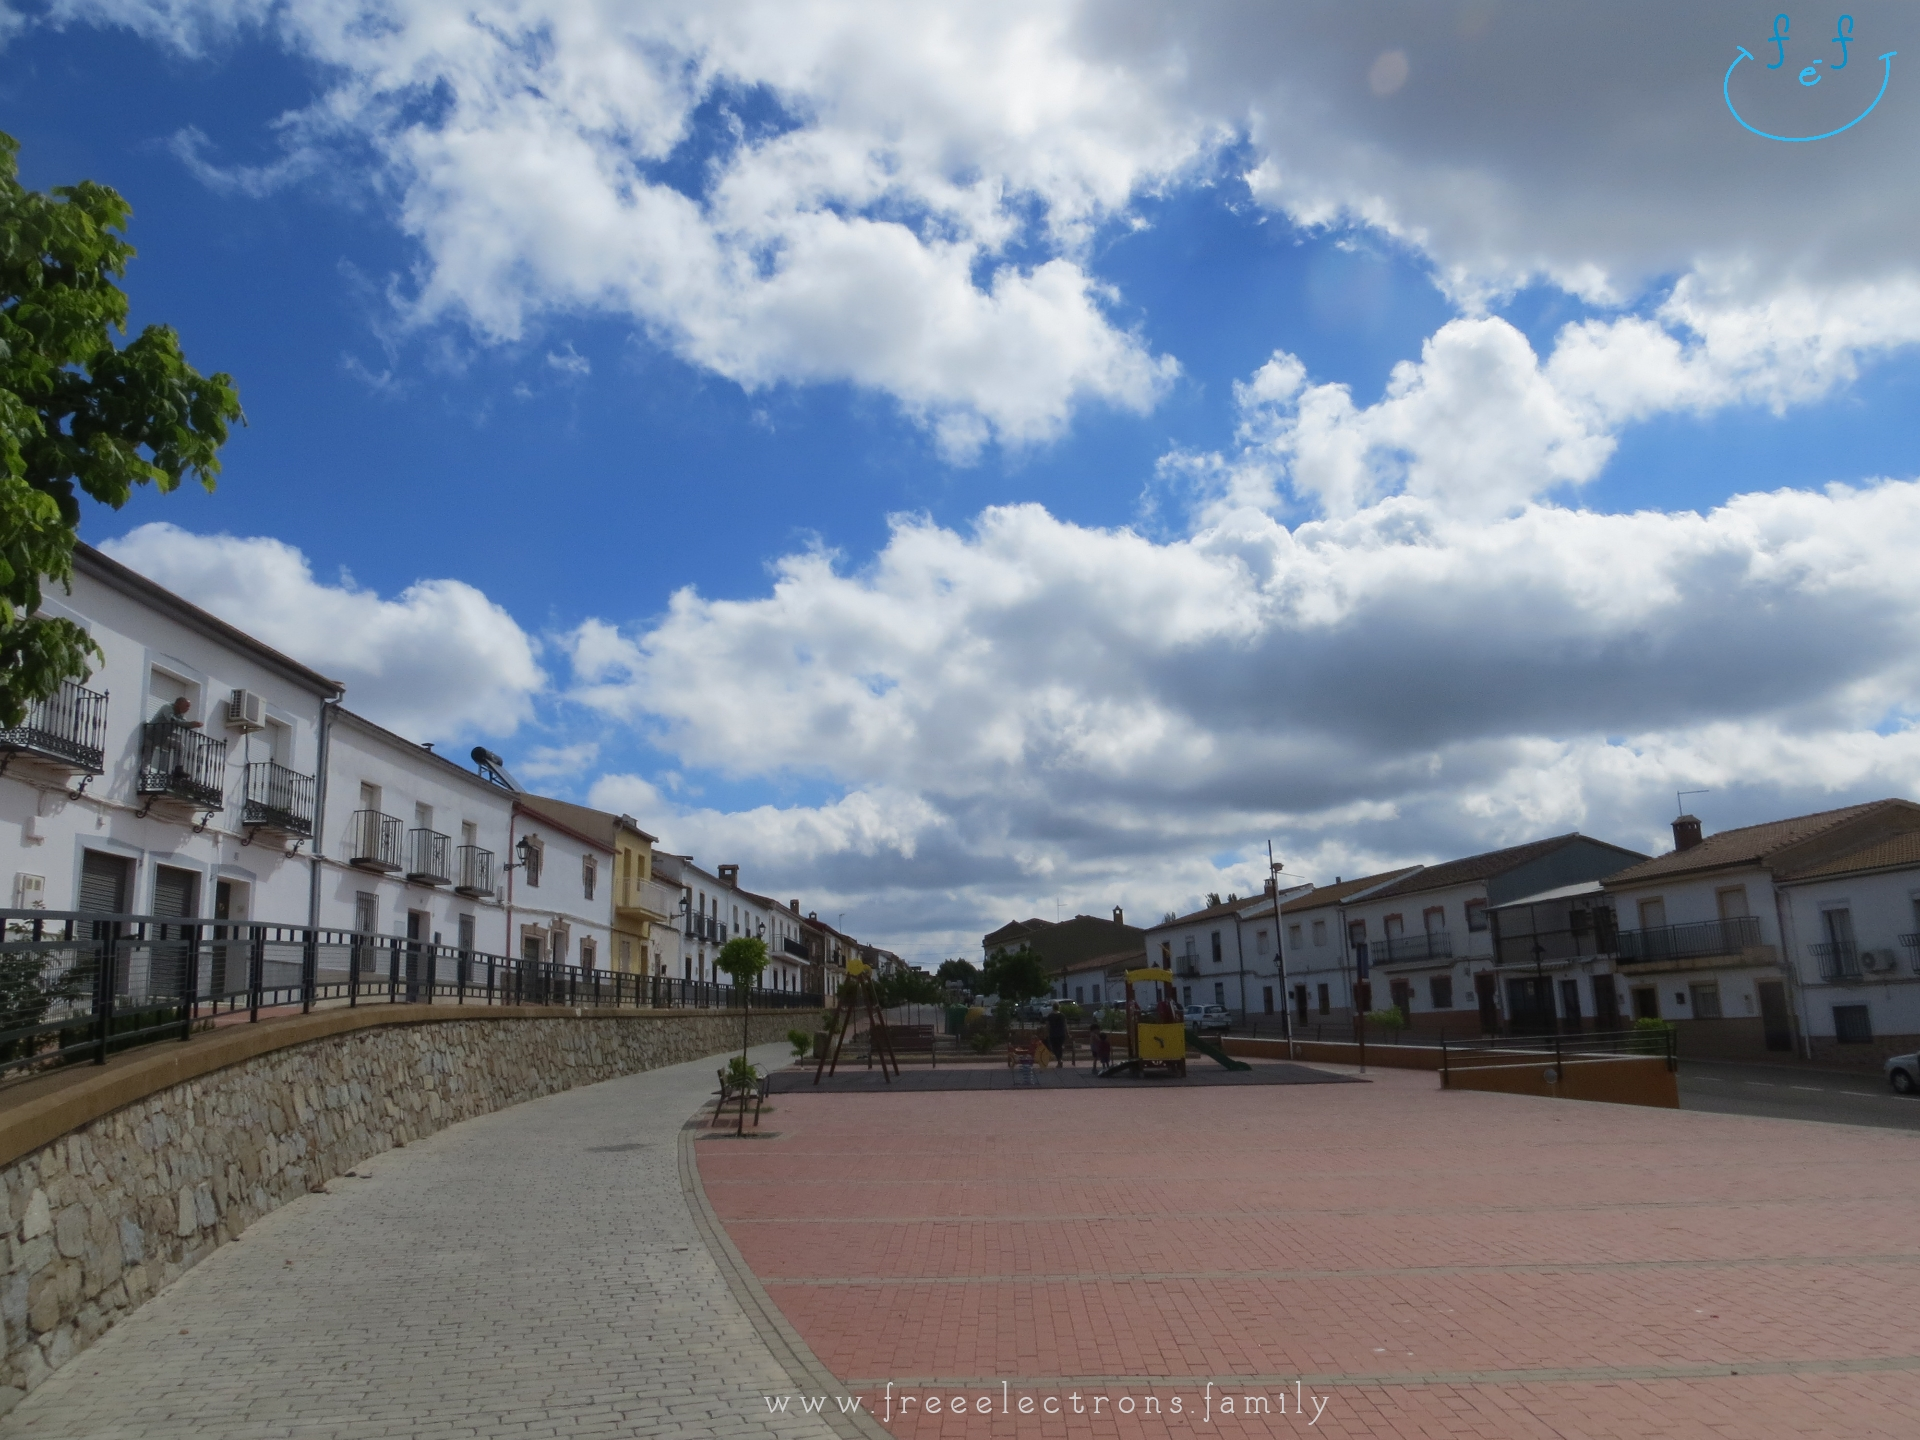 A #FreeElectrons.Family camping road trip Europe I stop in Santa Elena, Jaen, Spain.  Free play at a new playground in the clean sleepy town of Santa Elena.